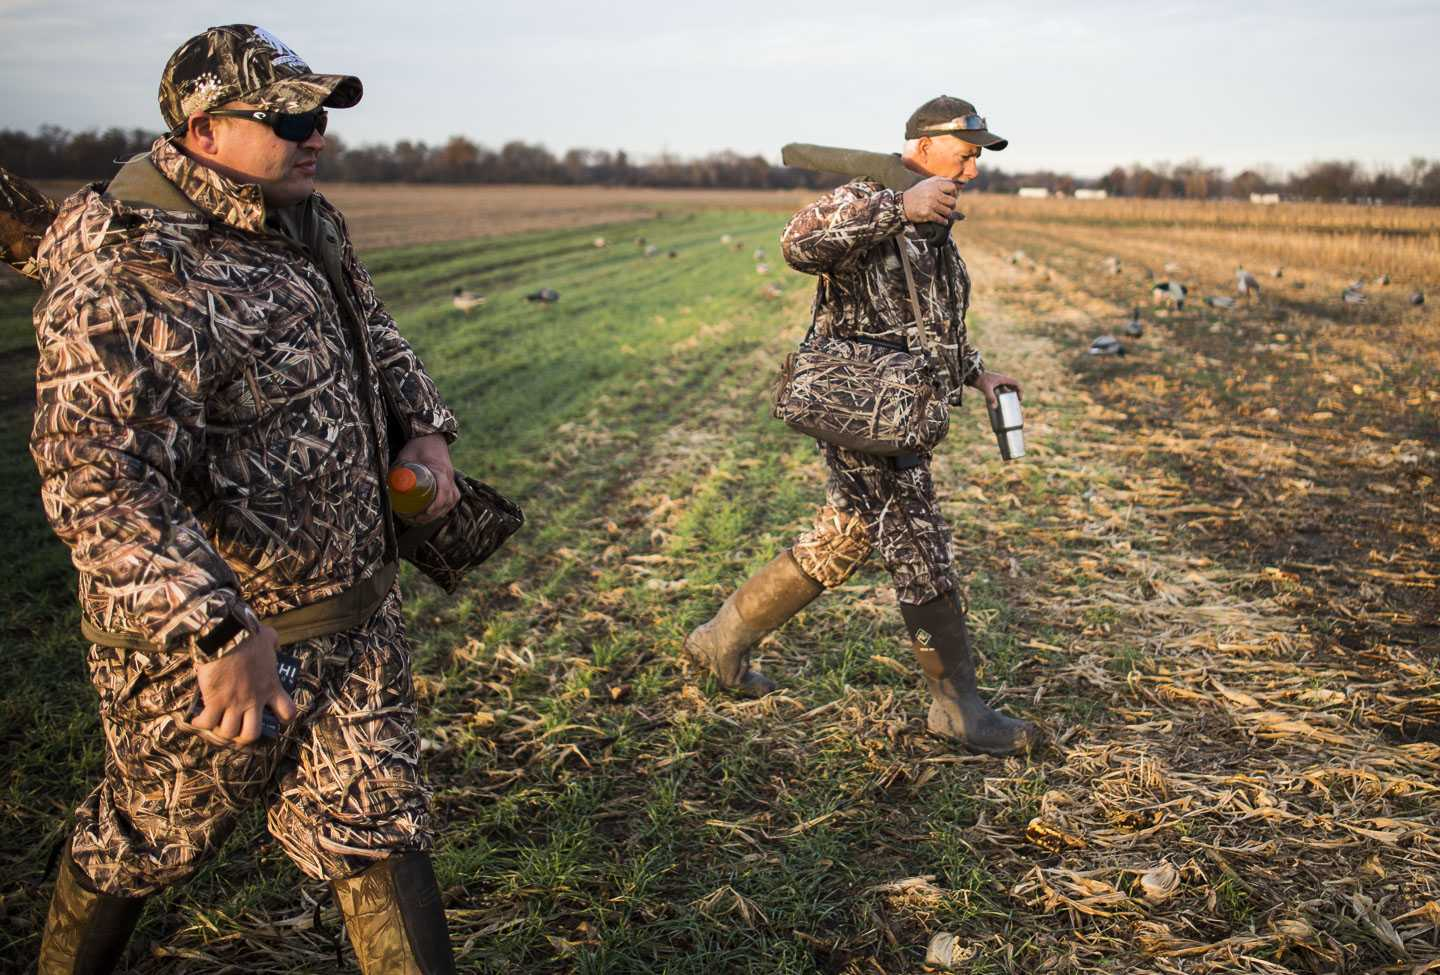 Grassy Lake Hunting Club guide Duane Smith, right, and John Thomas, of Nashville, Tenn., make their way to a hunting blind Wednesday, Nov. 30, 2016, during a Wounded Warriors duck hunt in Jonesboro. (Ryan Michalesko | @photosbylesko)